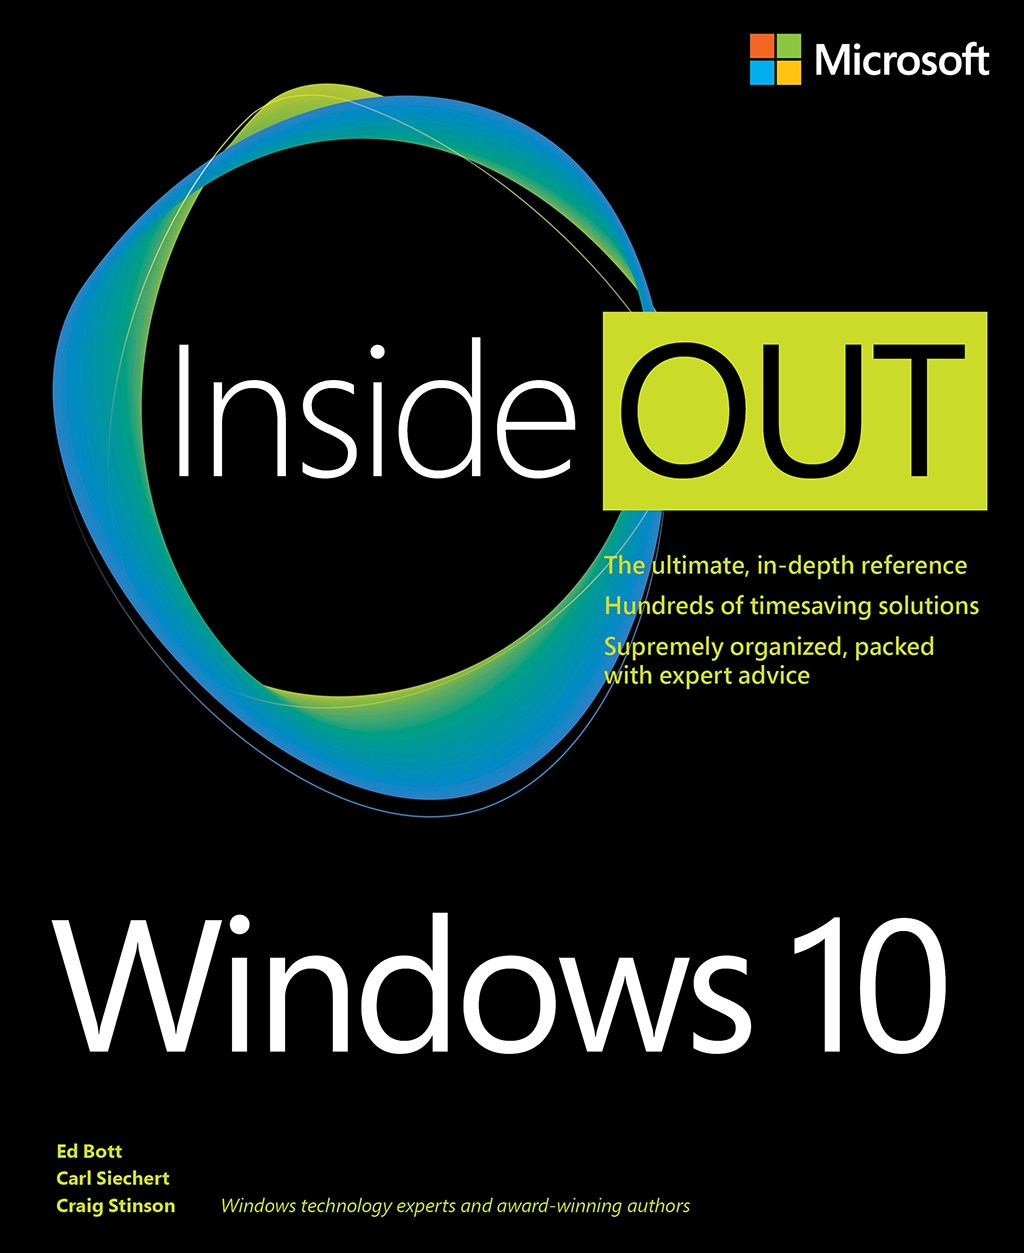 Windows 10 Inside Out | Micros...